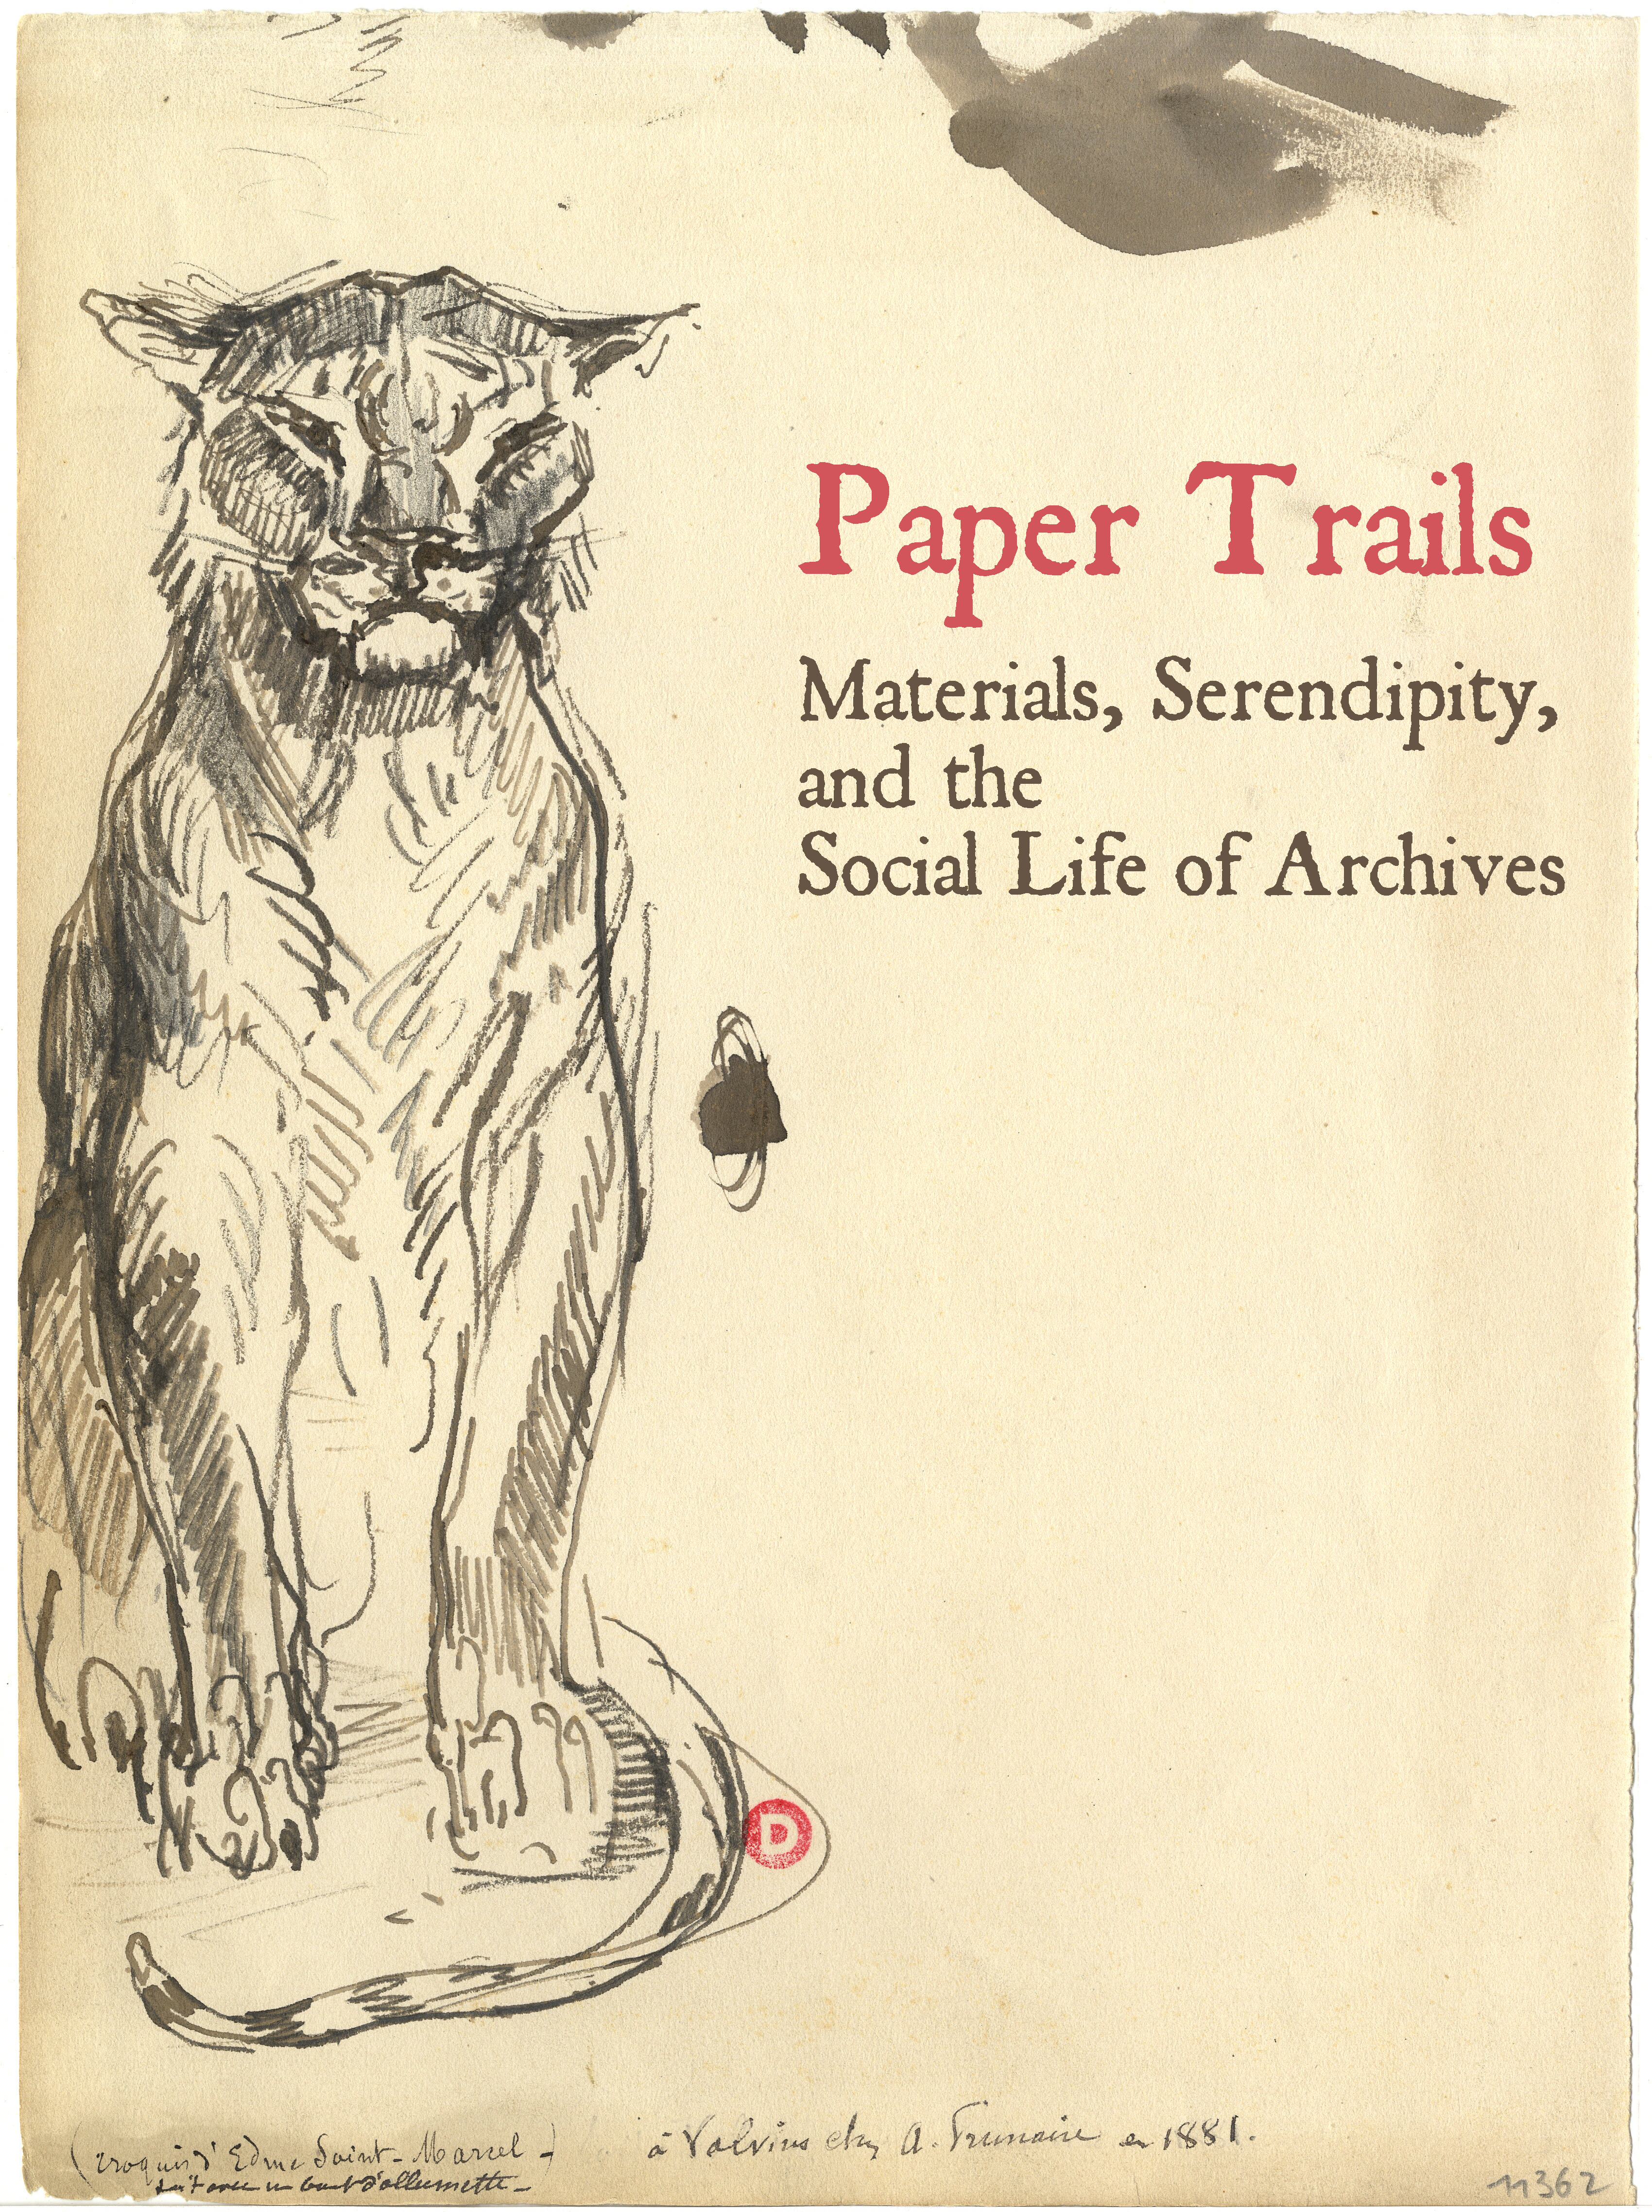 Paper Trails image